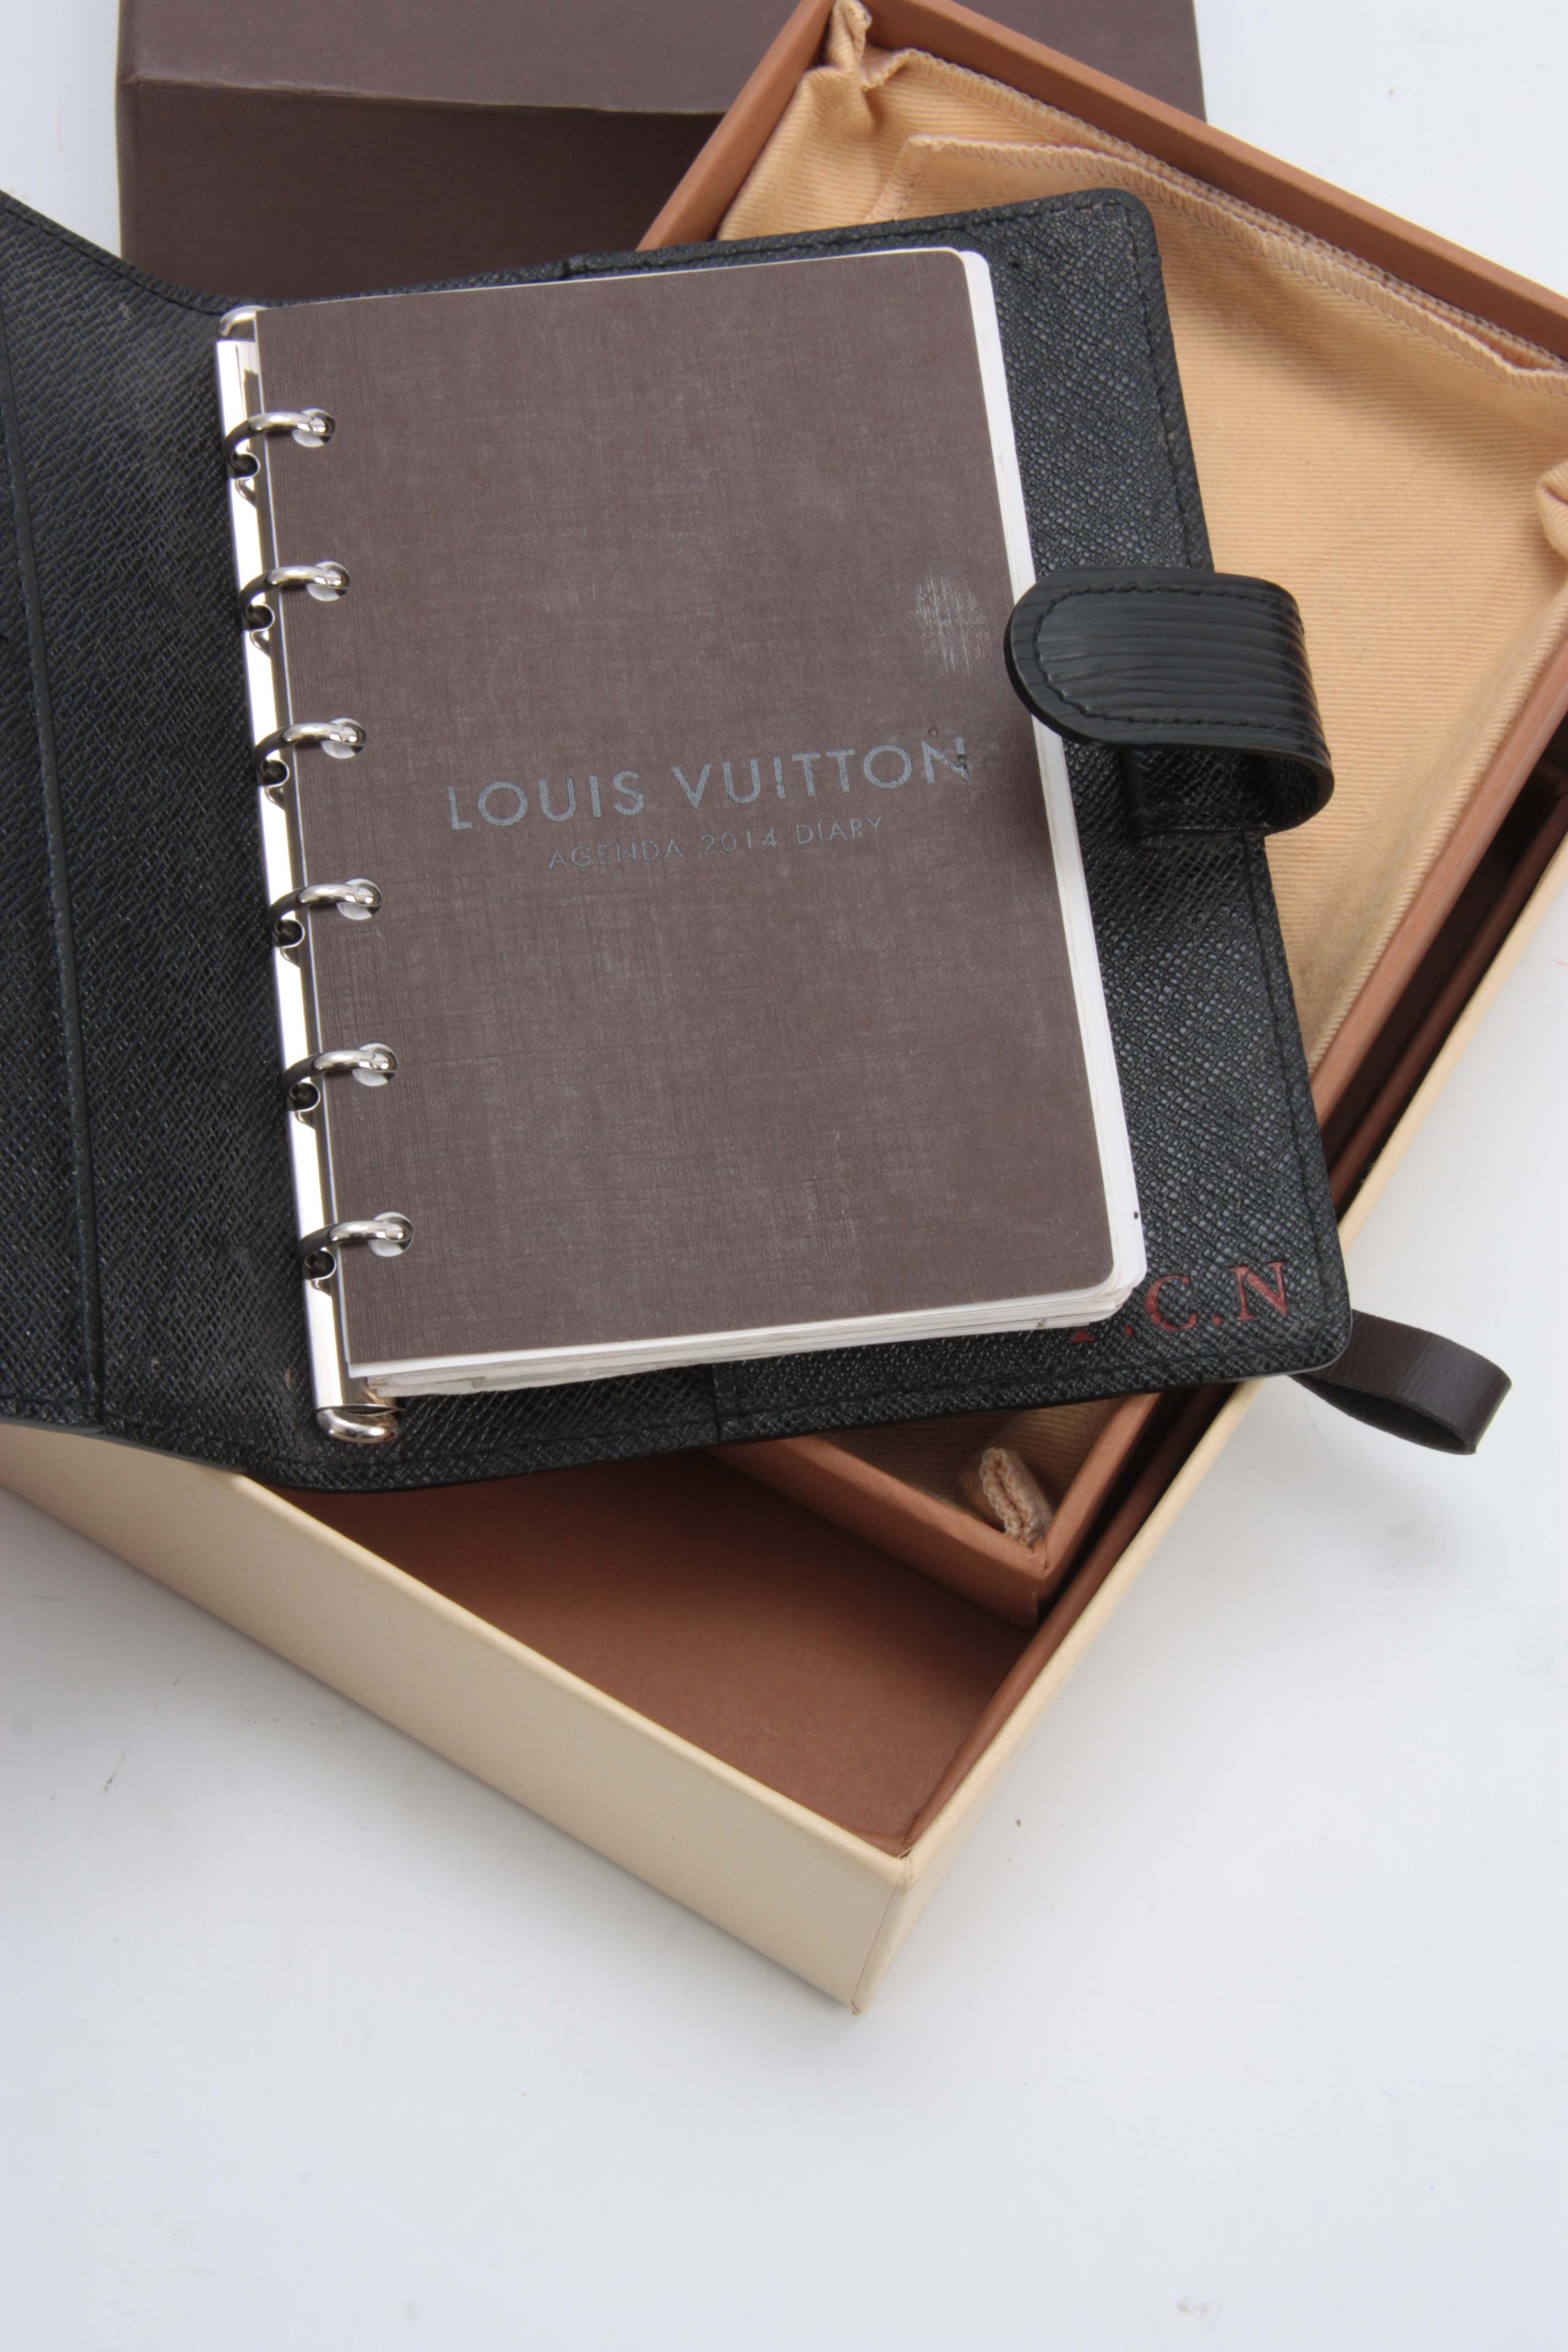 Lot 518 - A LOUIS VUITTON GRAINED BLACK LEATHER FOLDING DIARY for 2014 with sprung ring holders 14.5by18cm -